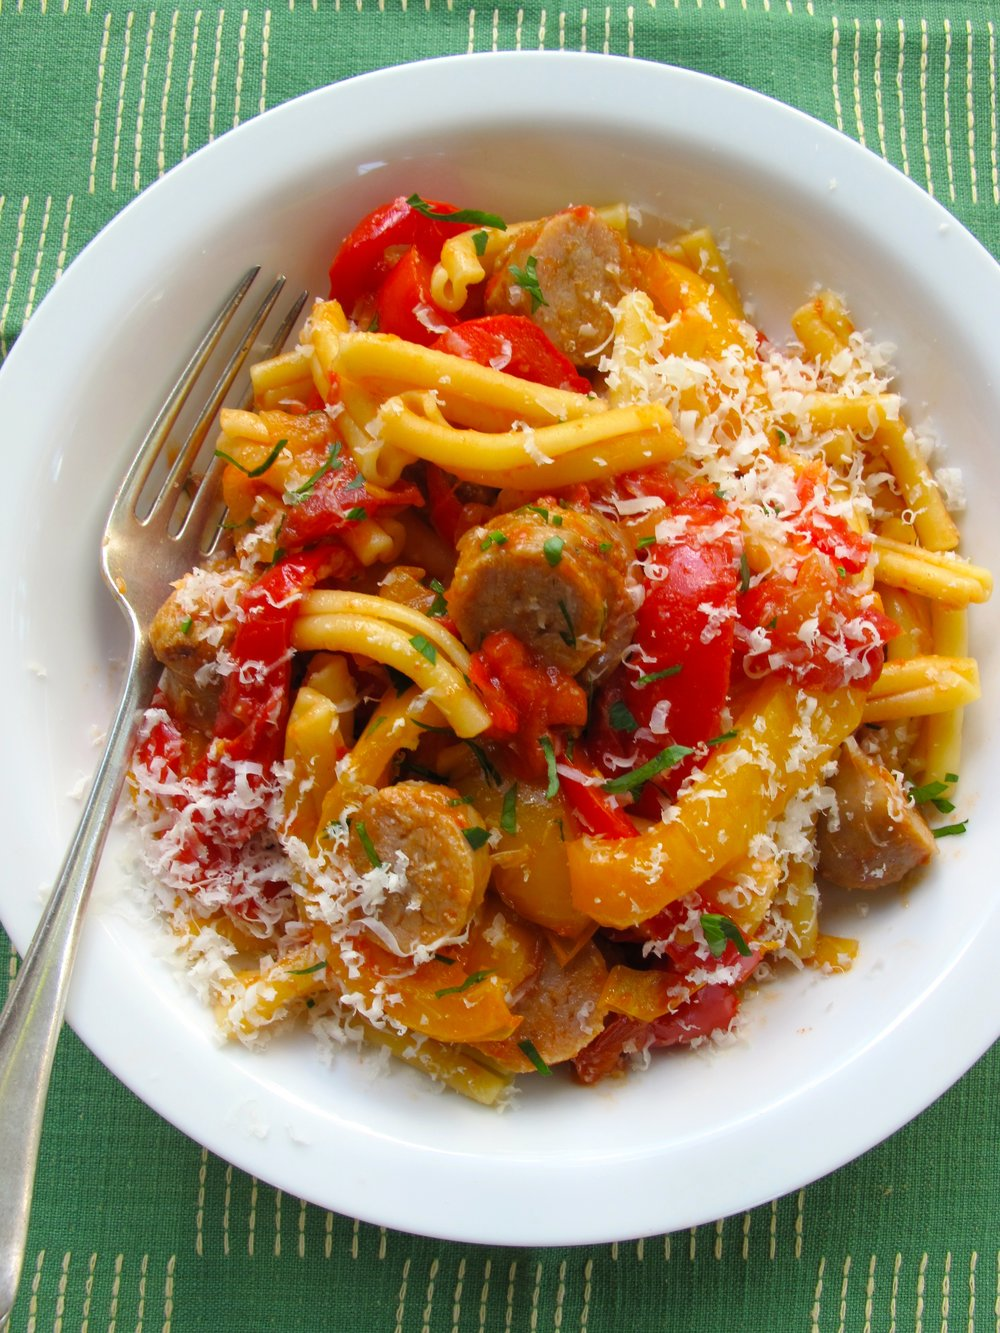 21.-pasta-with-sausages-and-peppers.jpg